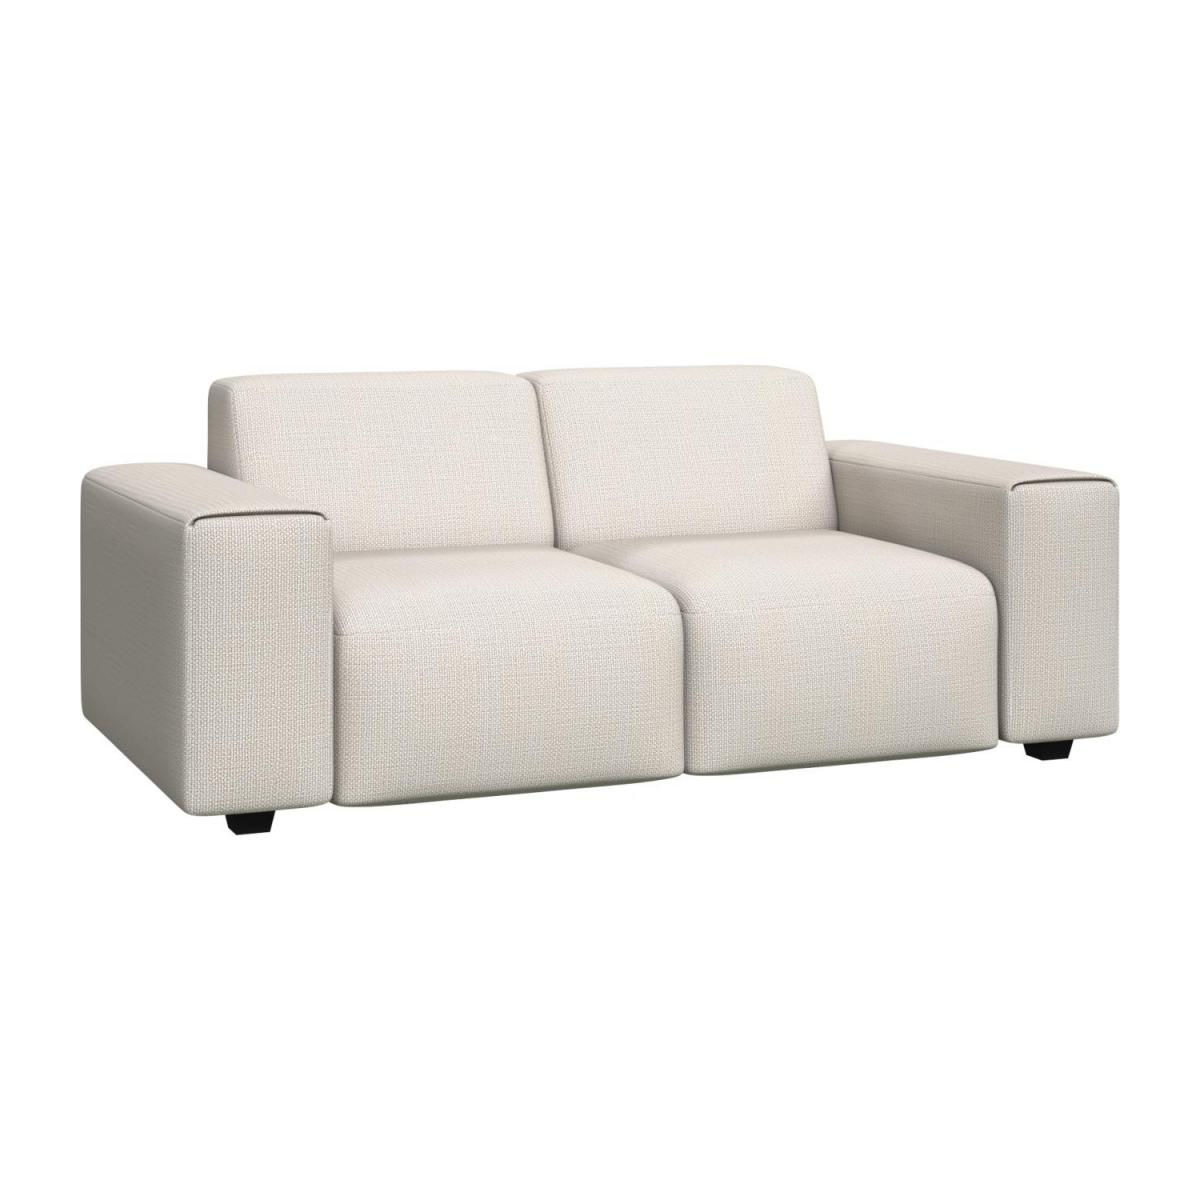 2 seater sofa in Fasoli fabric, snow white n°1